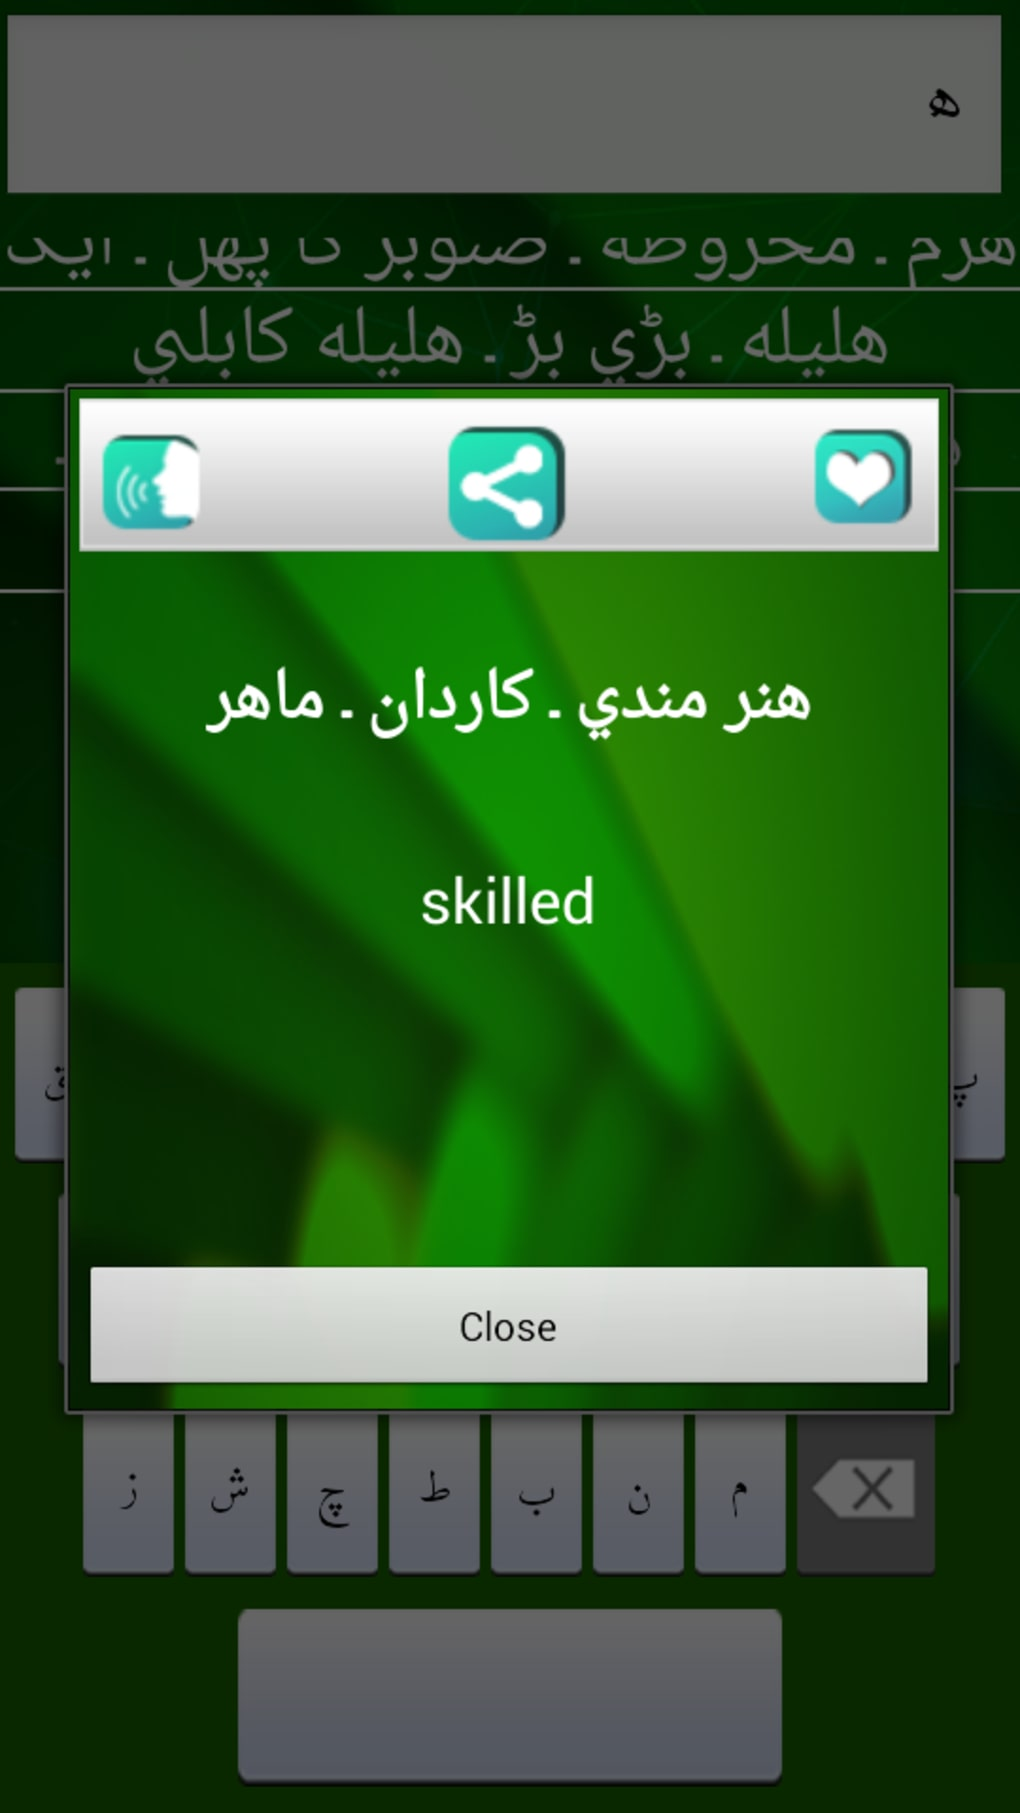 English In Italian: The English Urdu Dictionary For Android